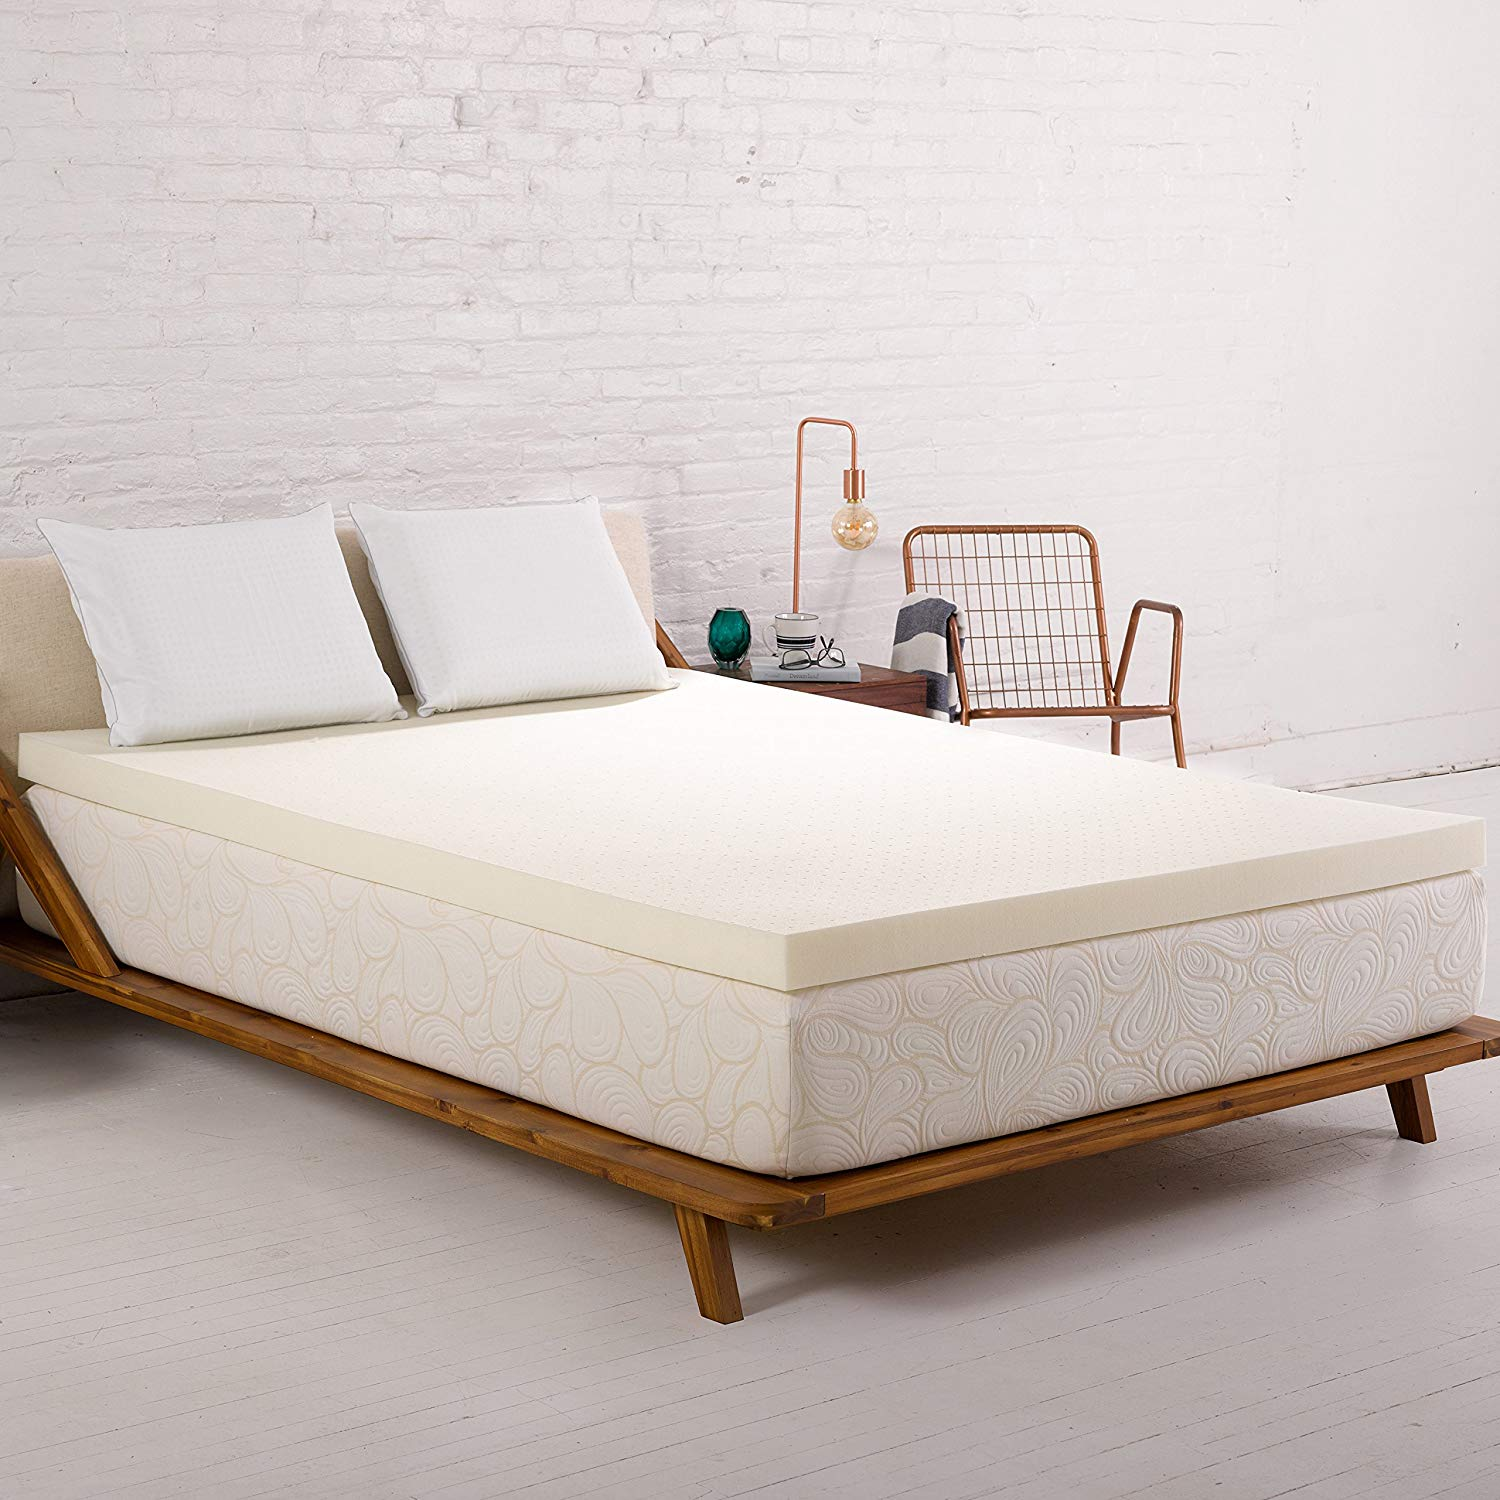 2 Inch Gel Mattress Topper The Best Memory Foam Mattress Topper Brands And Buying Guide For